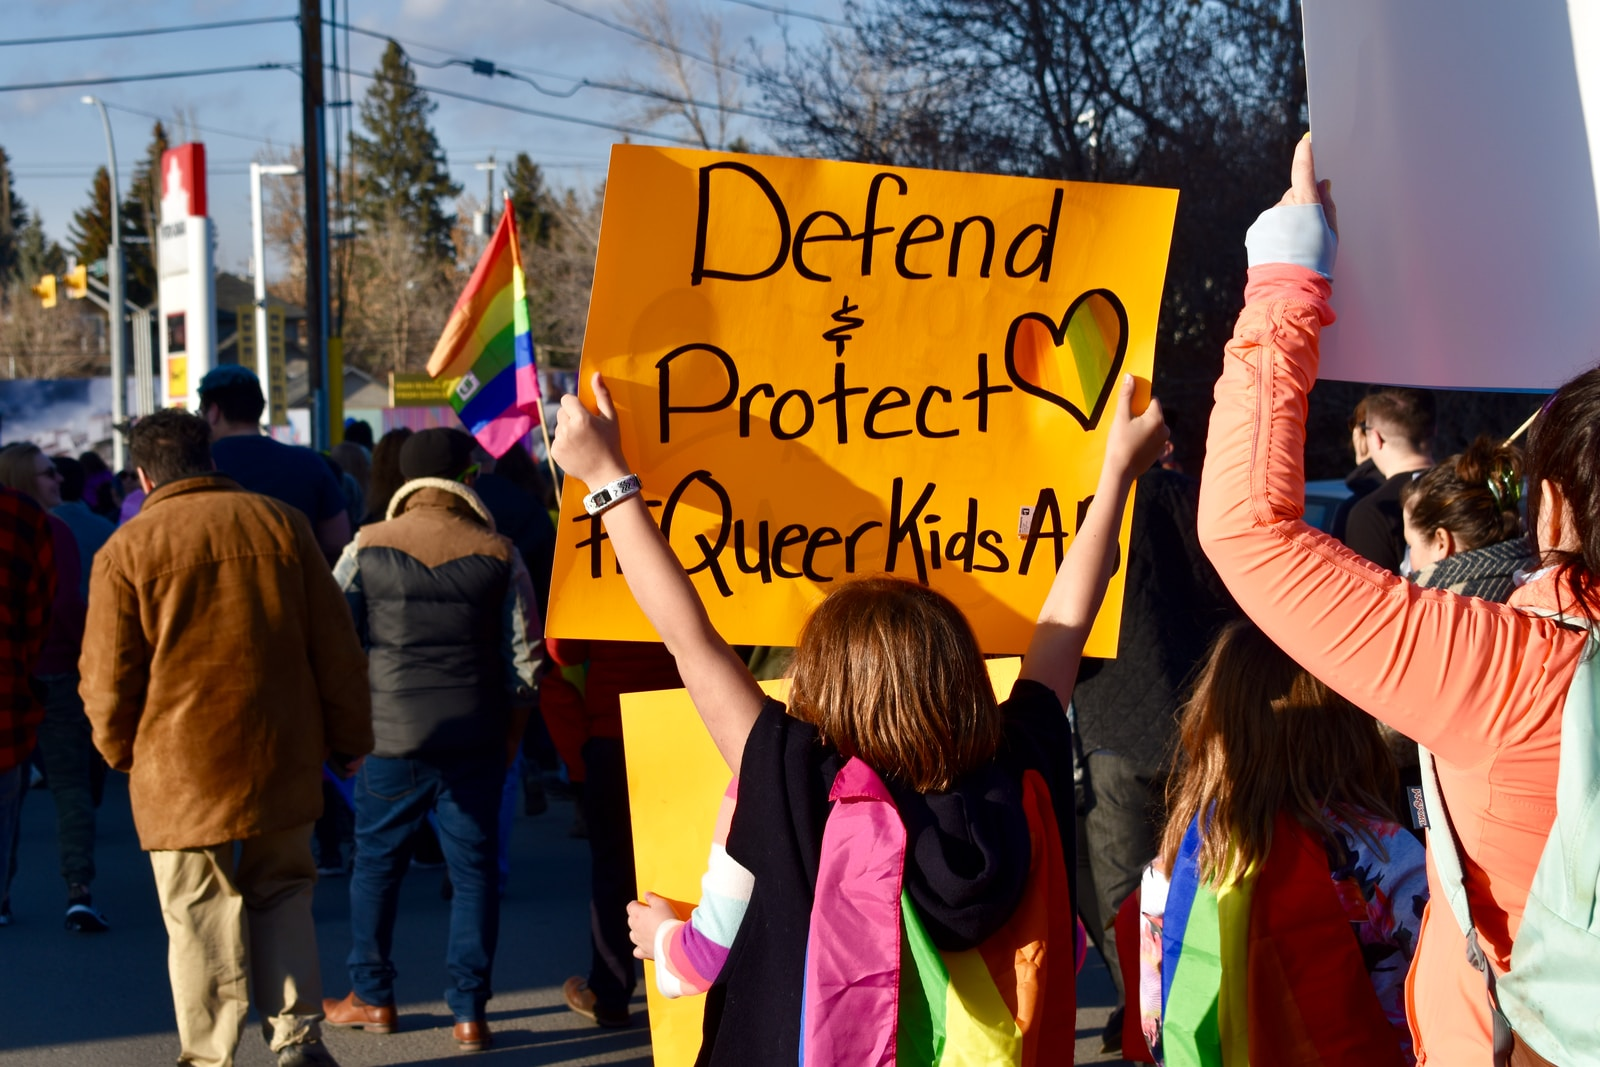 """Peoosn holding printed orange paper that reads """"defend + protect queer kids"""""""